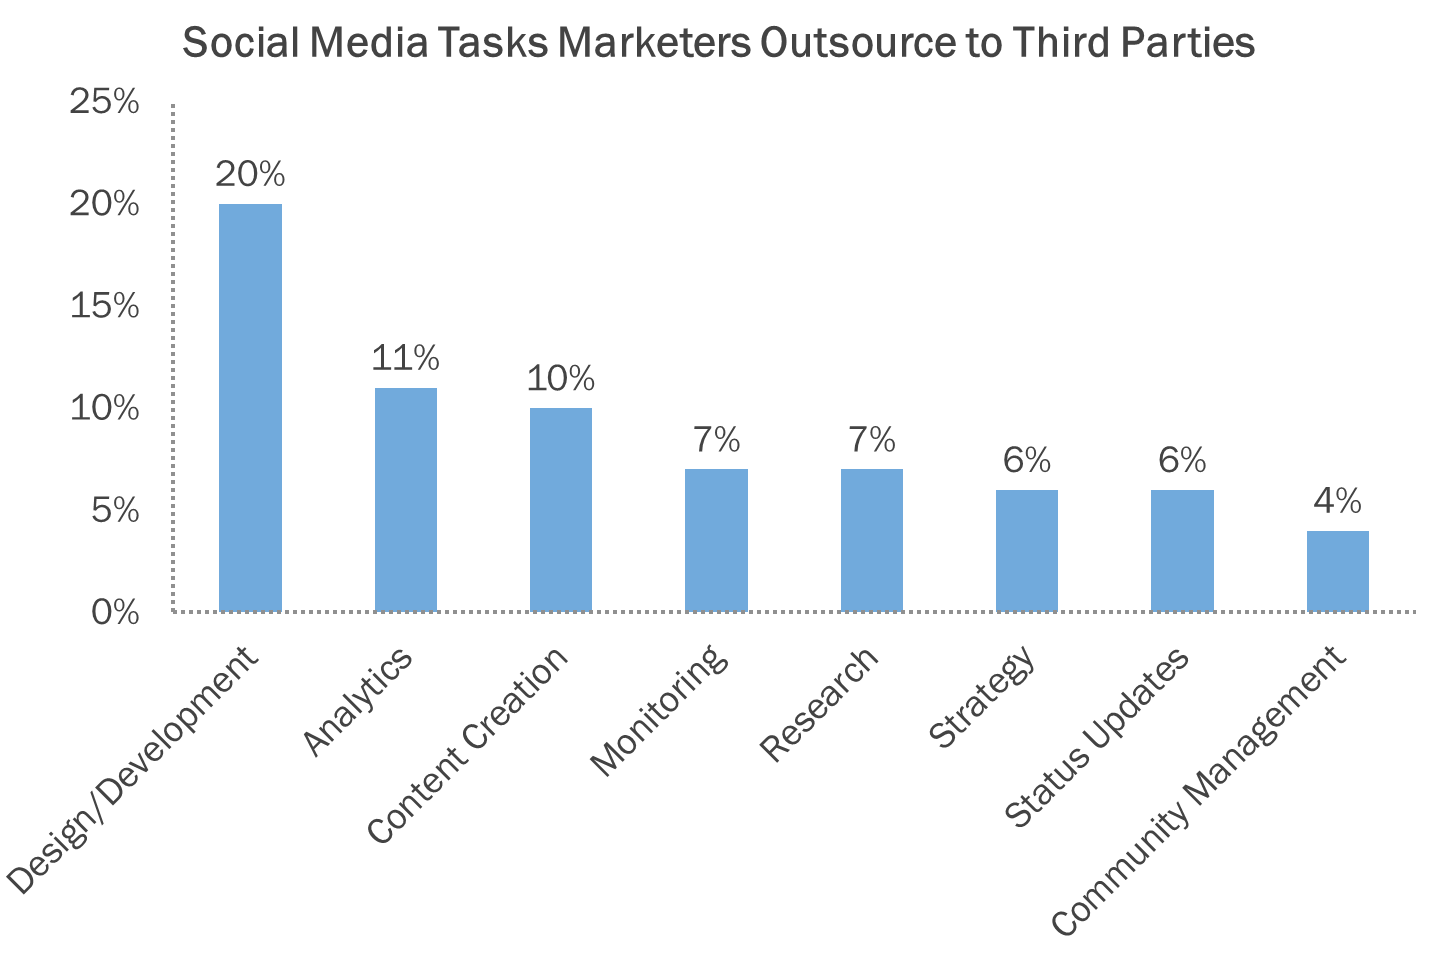 social media tasks being outsourced